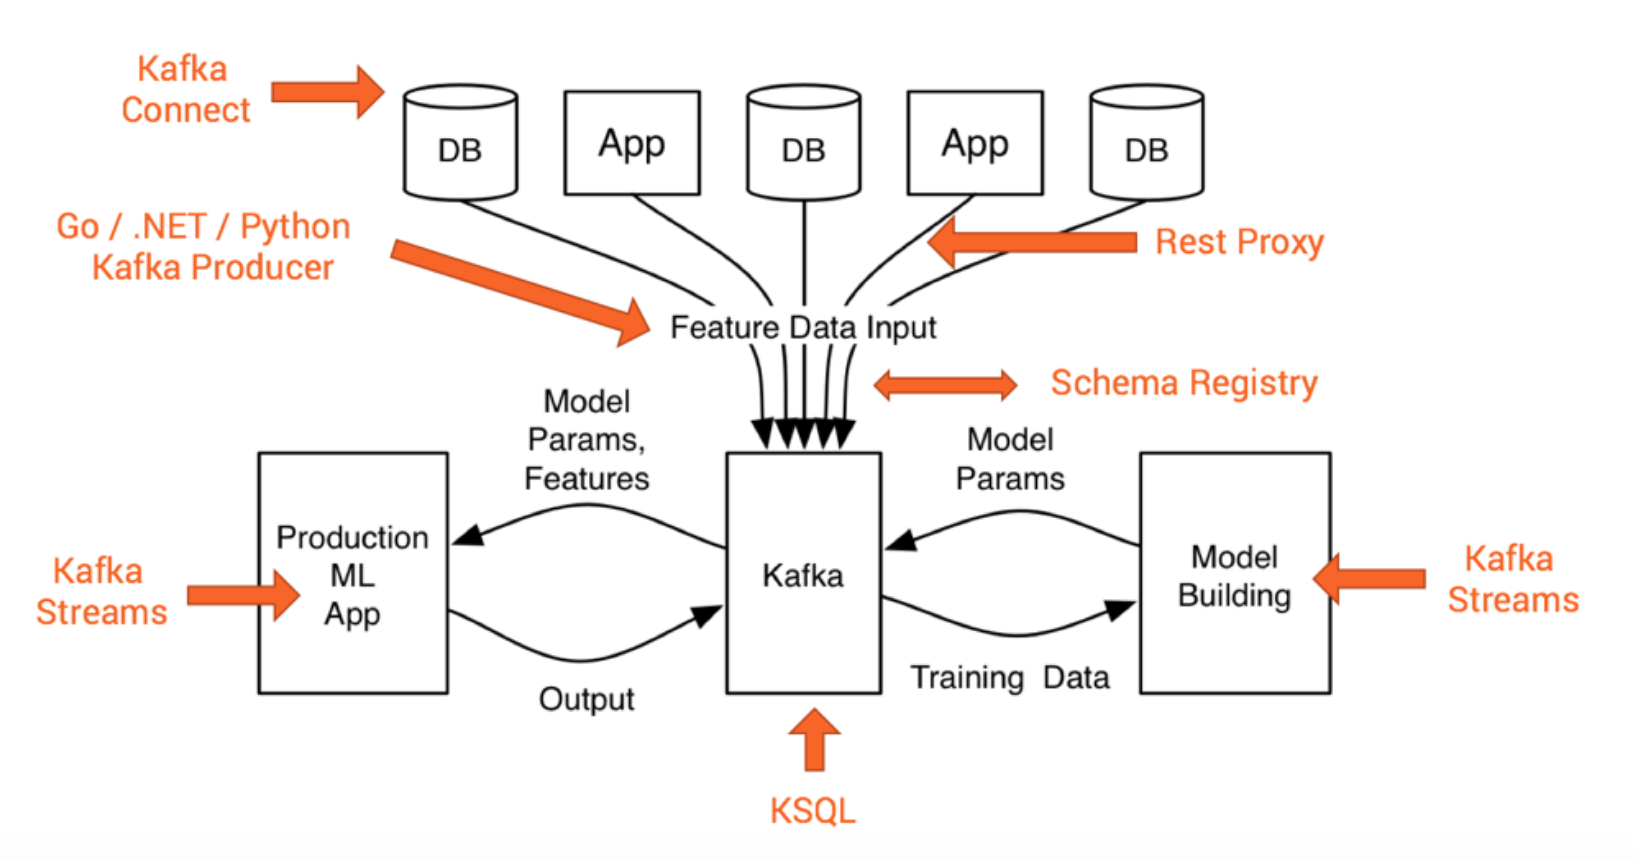 Kafka Open Source Ecosystem for a Scalable Mission Critical Machine Learning Infrastructure